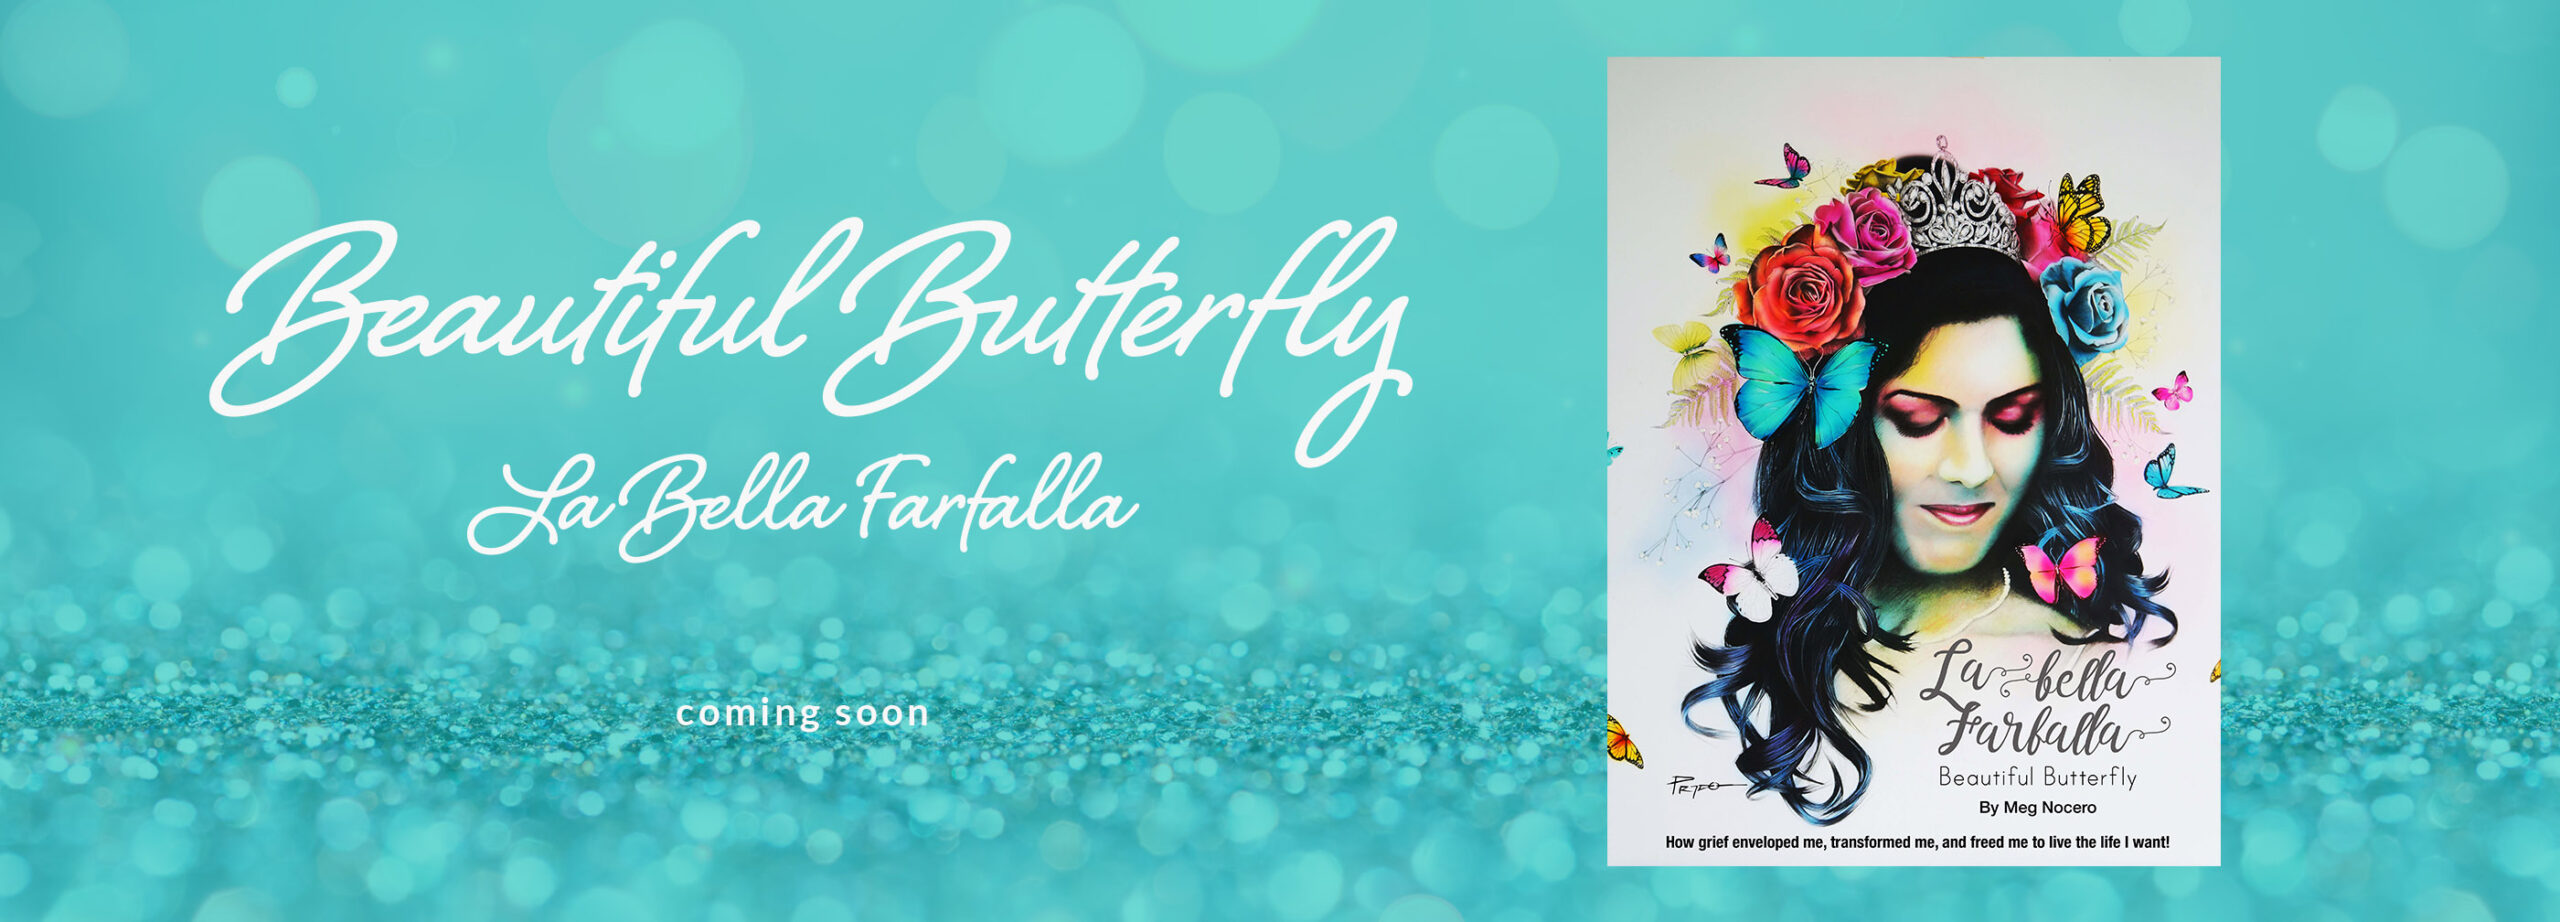 homepage-image-butterfly-scaled